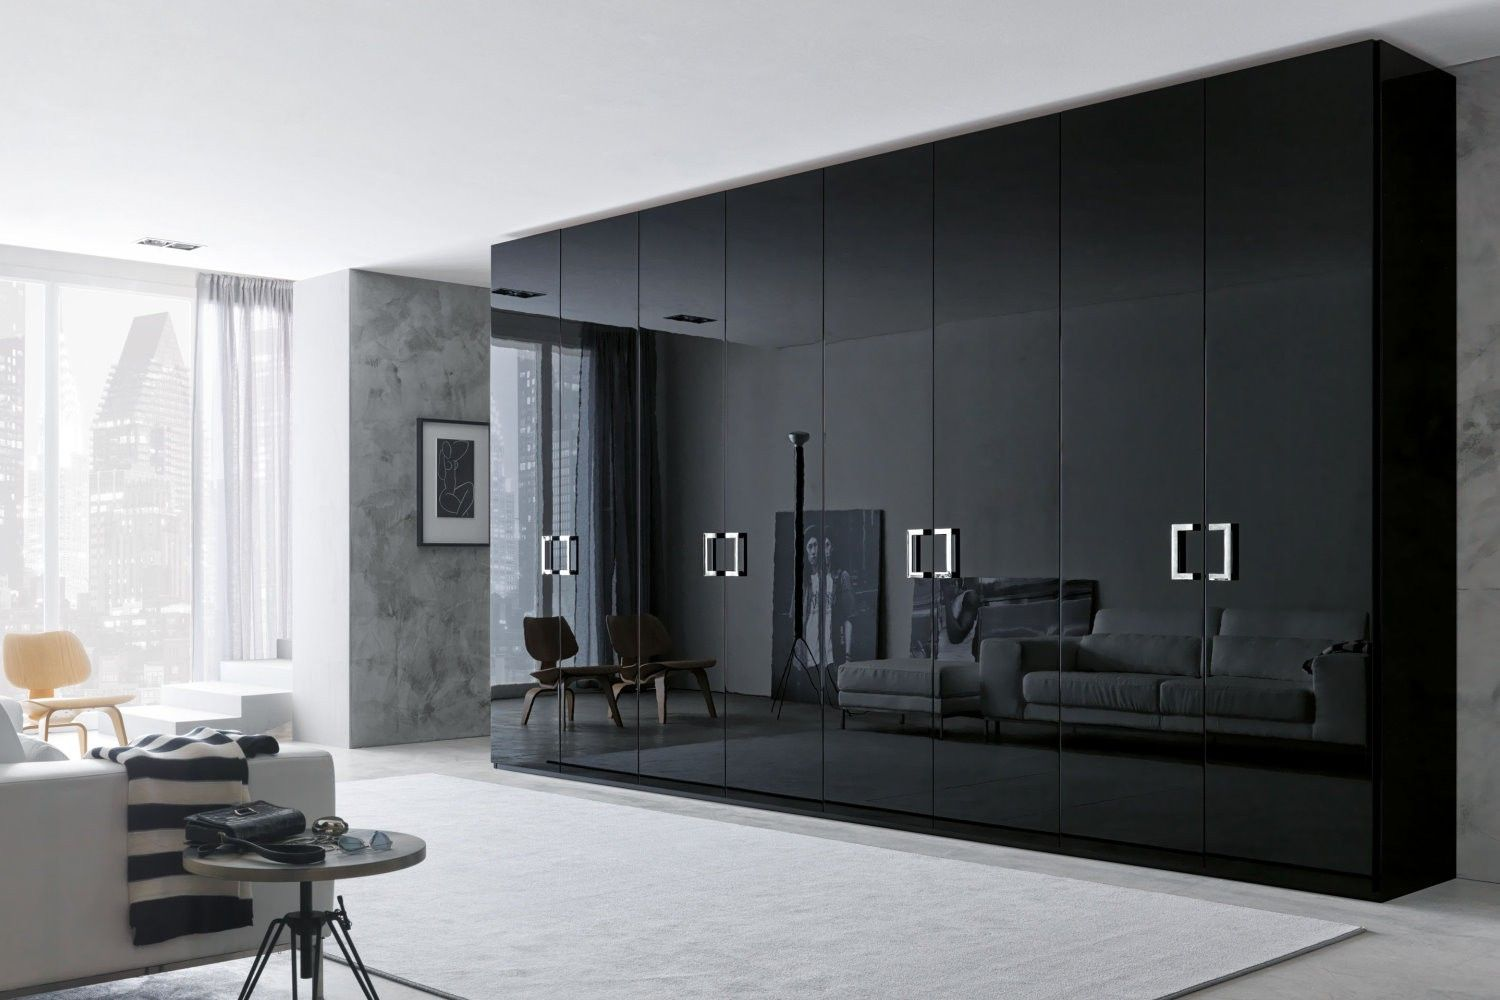 35 modern wardrobe furniture designs wardrobe design. Black Bedroom Furniture Sets. Home Design Ideas